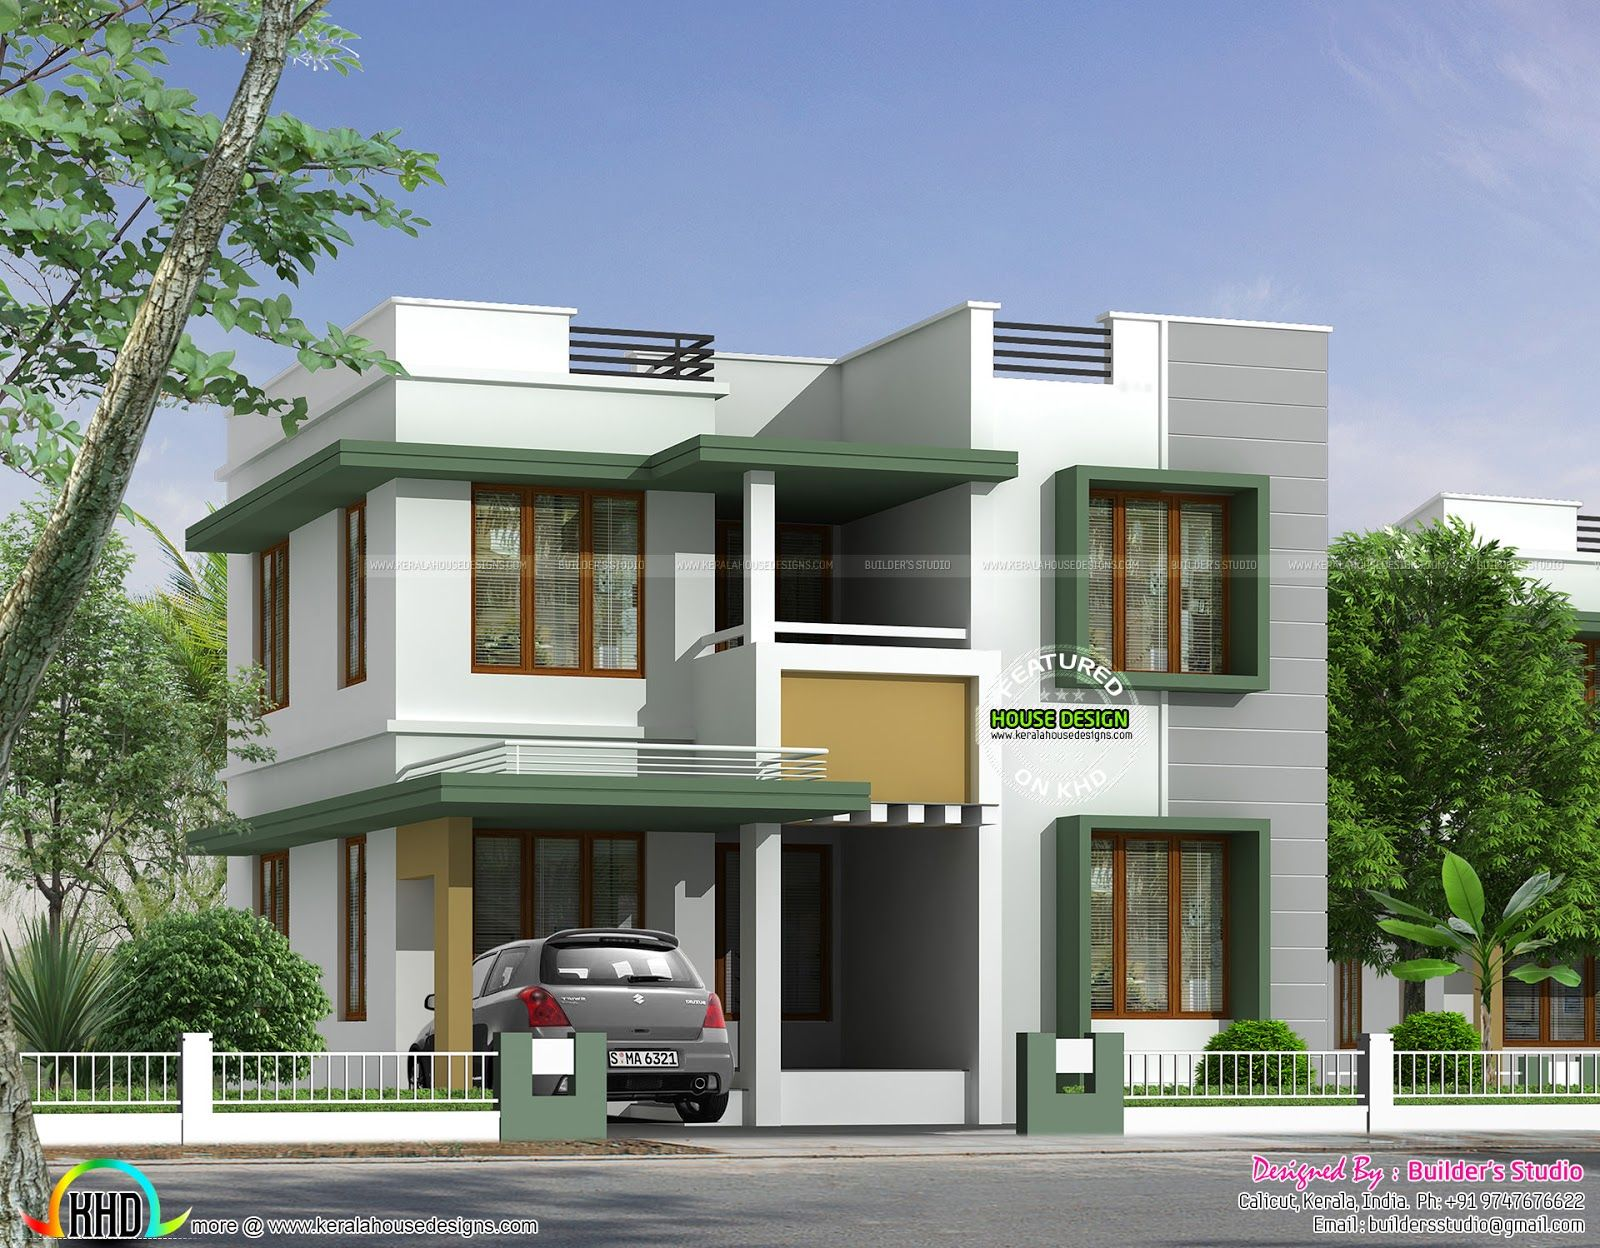 2 Bedroom House Designs House Design Square Feet Home Kerala Plans Pictureicon Beautiful